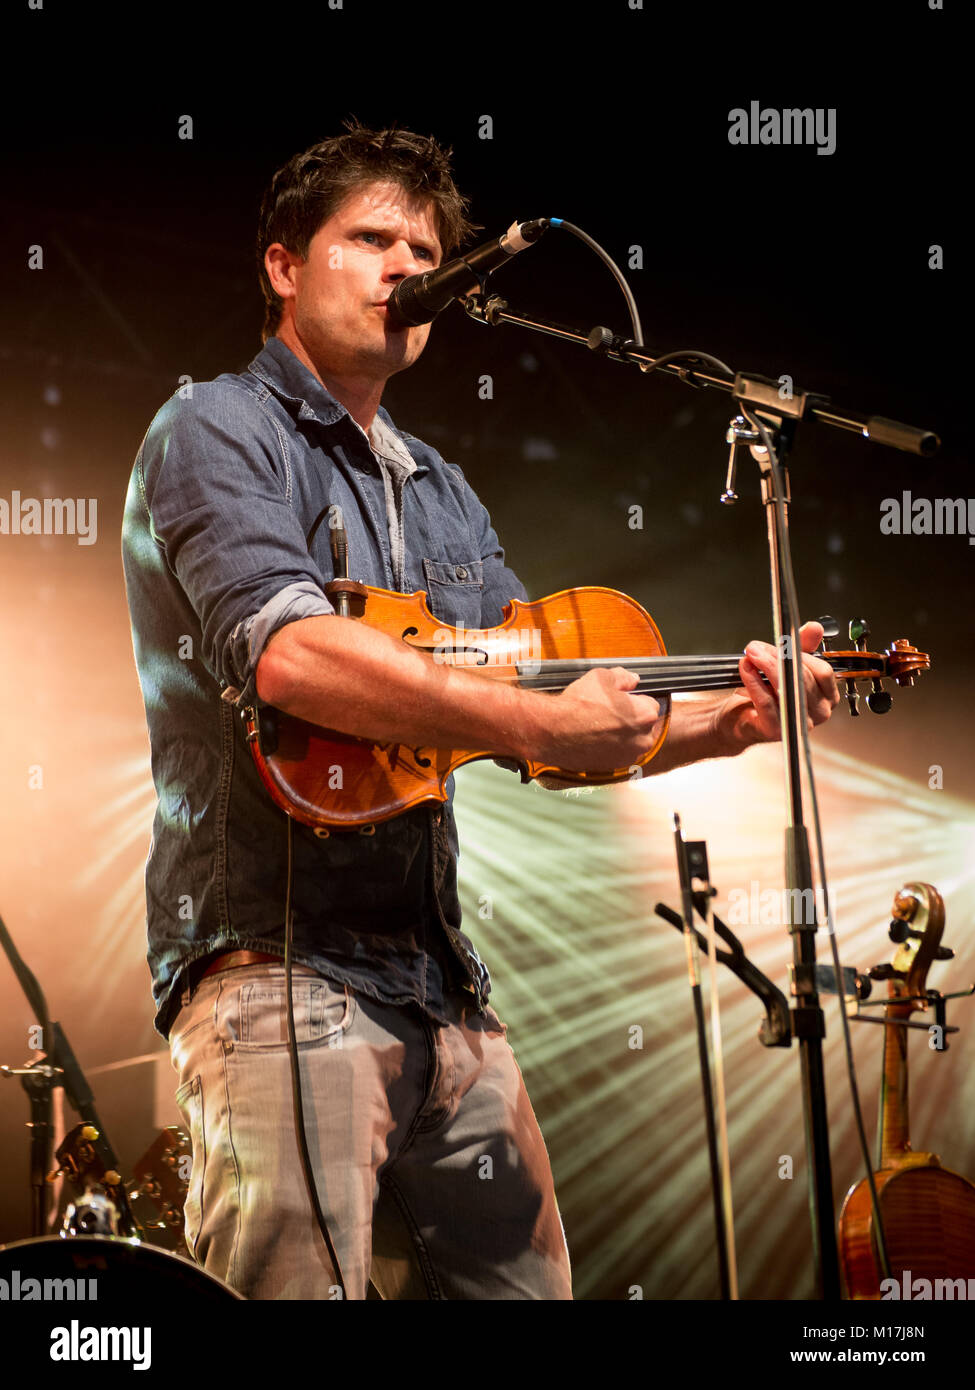 Multi-instrumentalist, folk singer and songwriter Seth Lakeman performs at the Moonbeams Festival 2017. - Stock Image